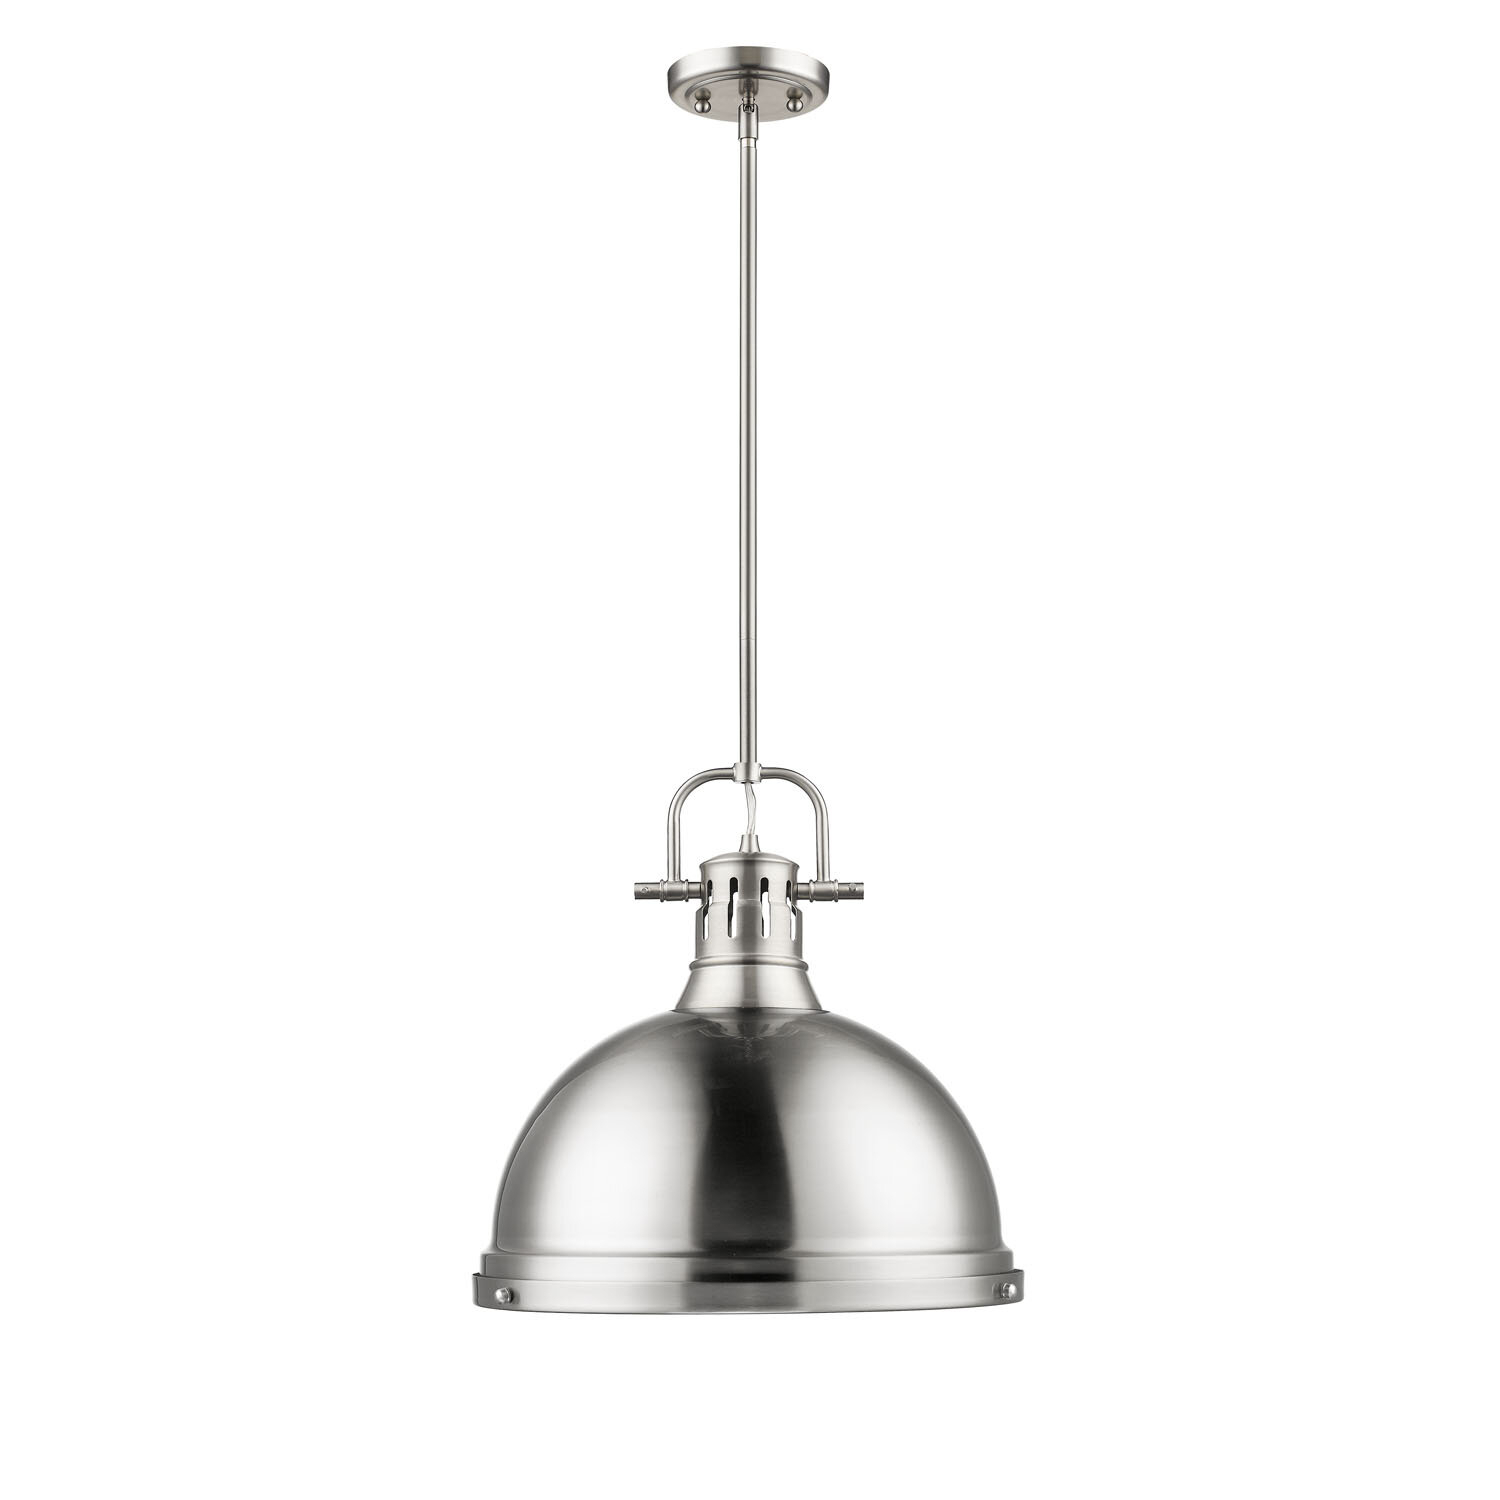 Bodalla 1 Light Single Dome Pendant & Reviews | Birch Lane Inside Priston 1 Light Single Dome Pendants (View 5 of 30)